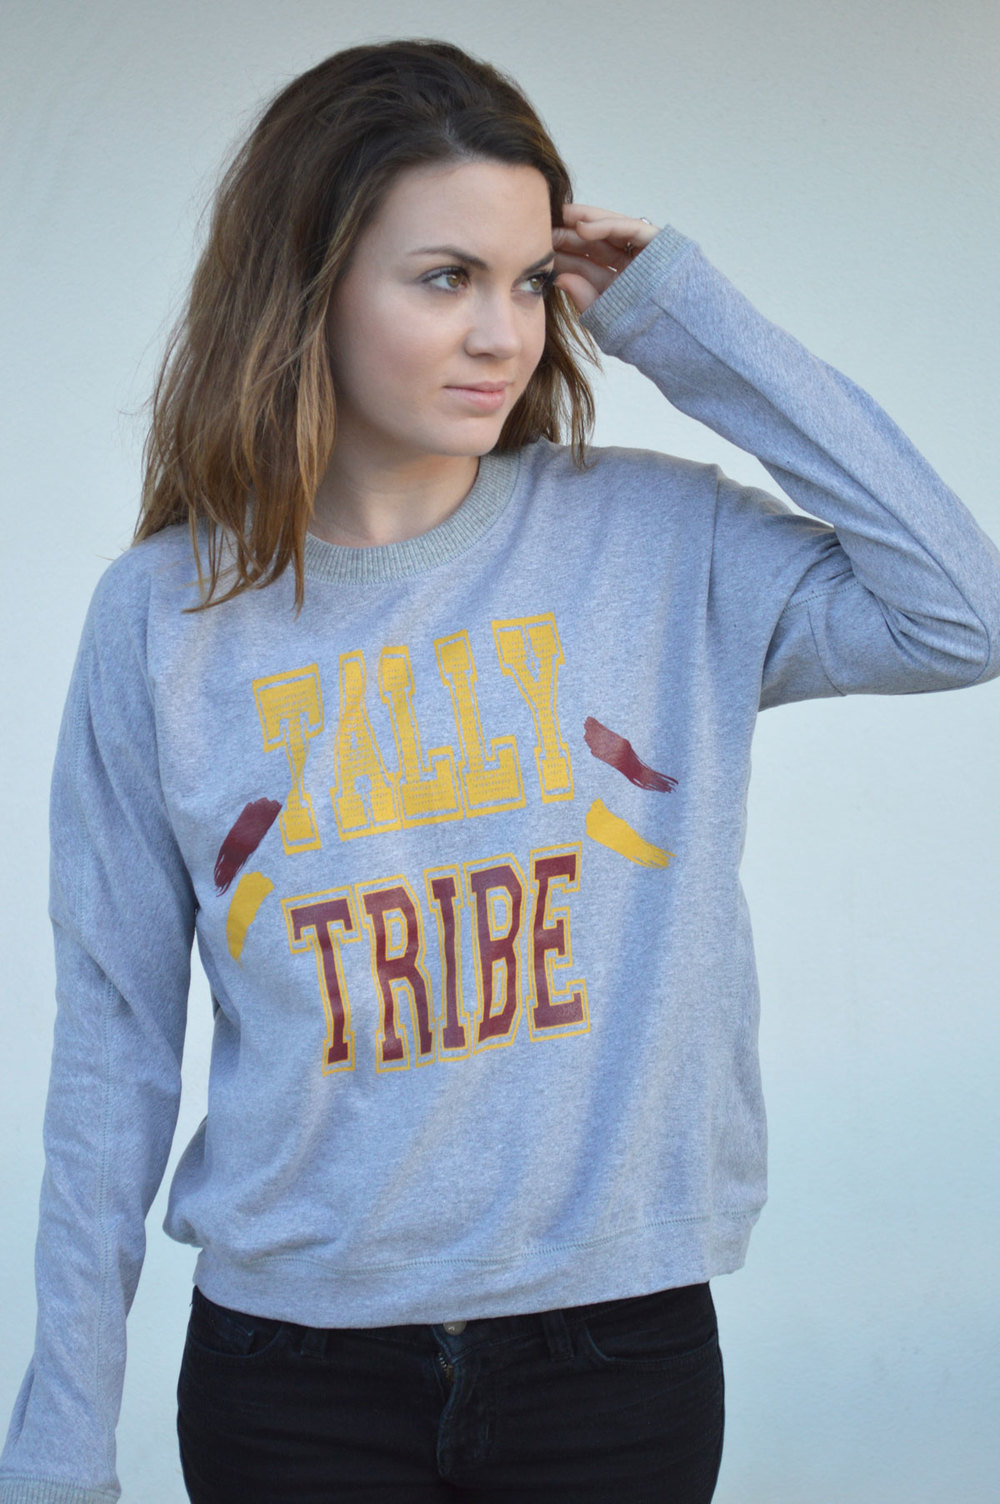 fsu-florida-state-gameday-threadz-game-wear-football-college-team-tally-tribe-lifestyle-style-blogger-2014.jpeg